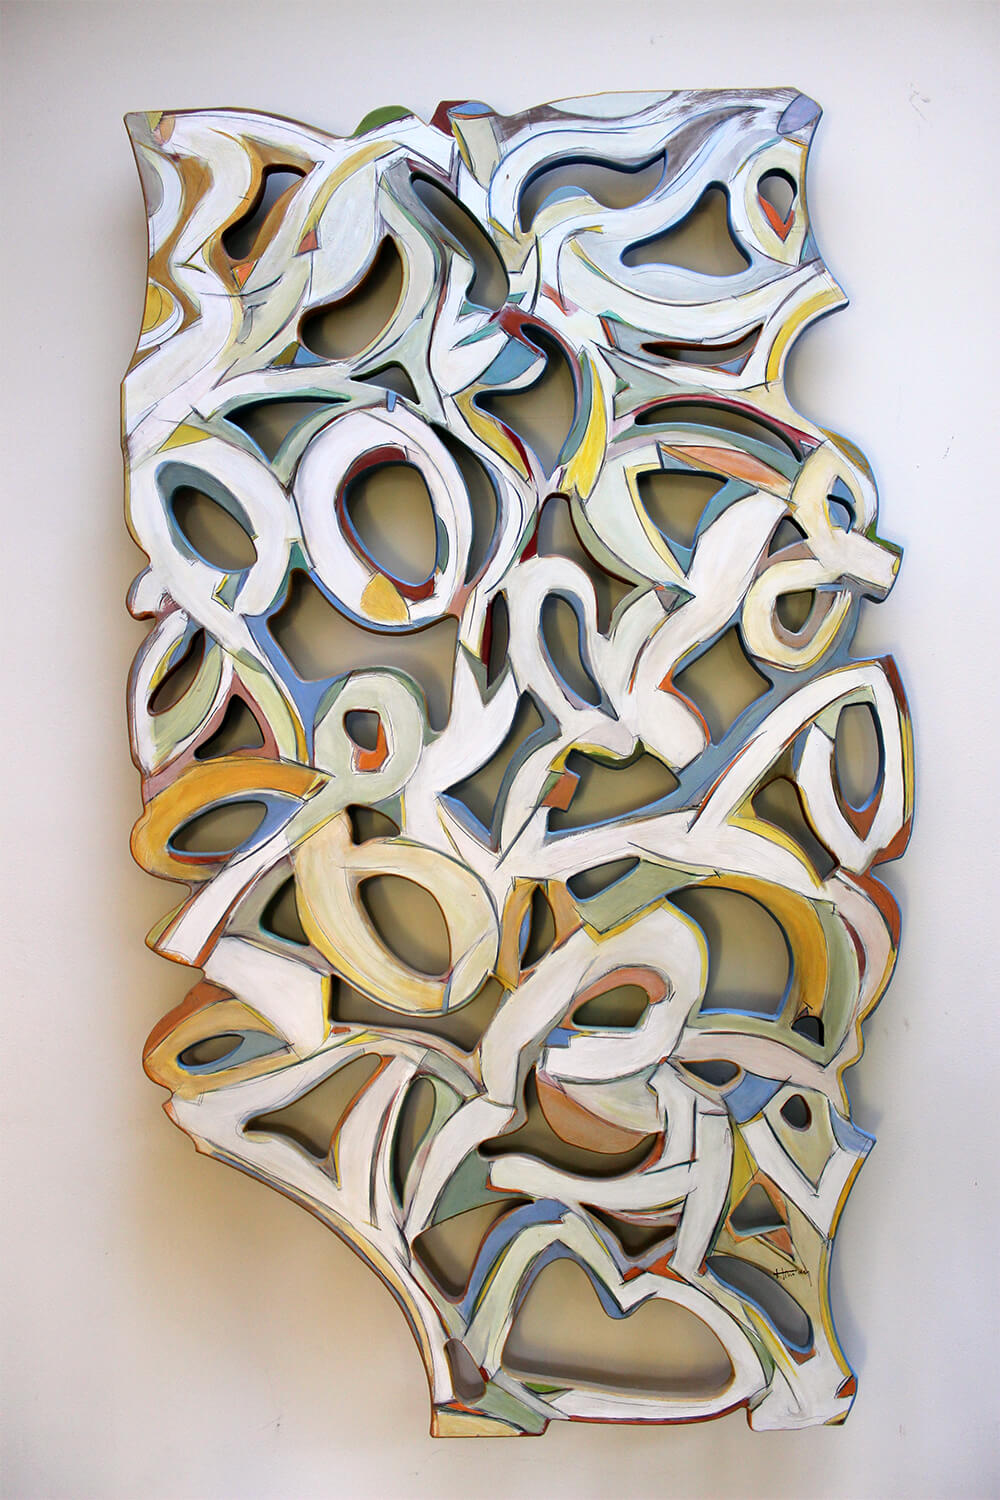 Low Relief Wall Sculpture by George Handy